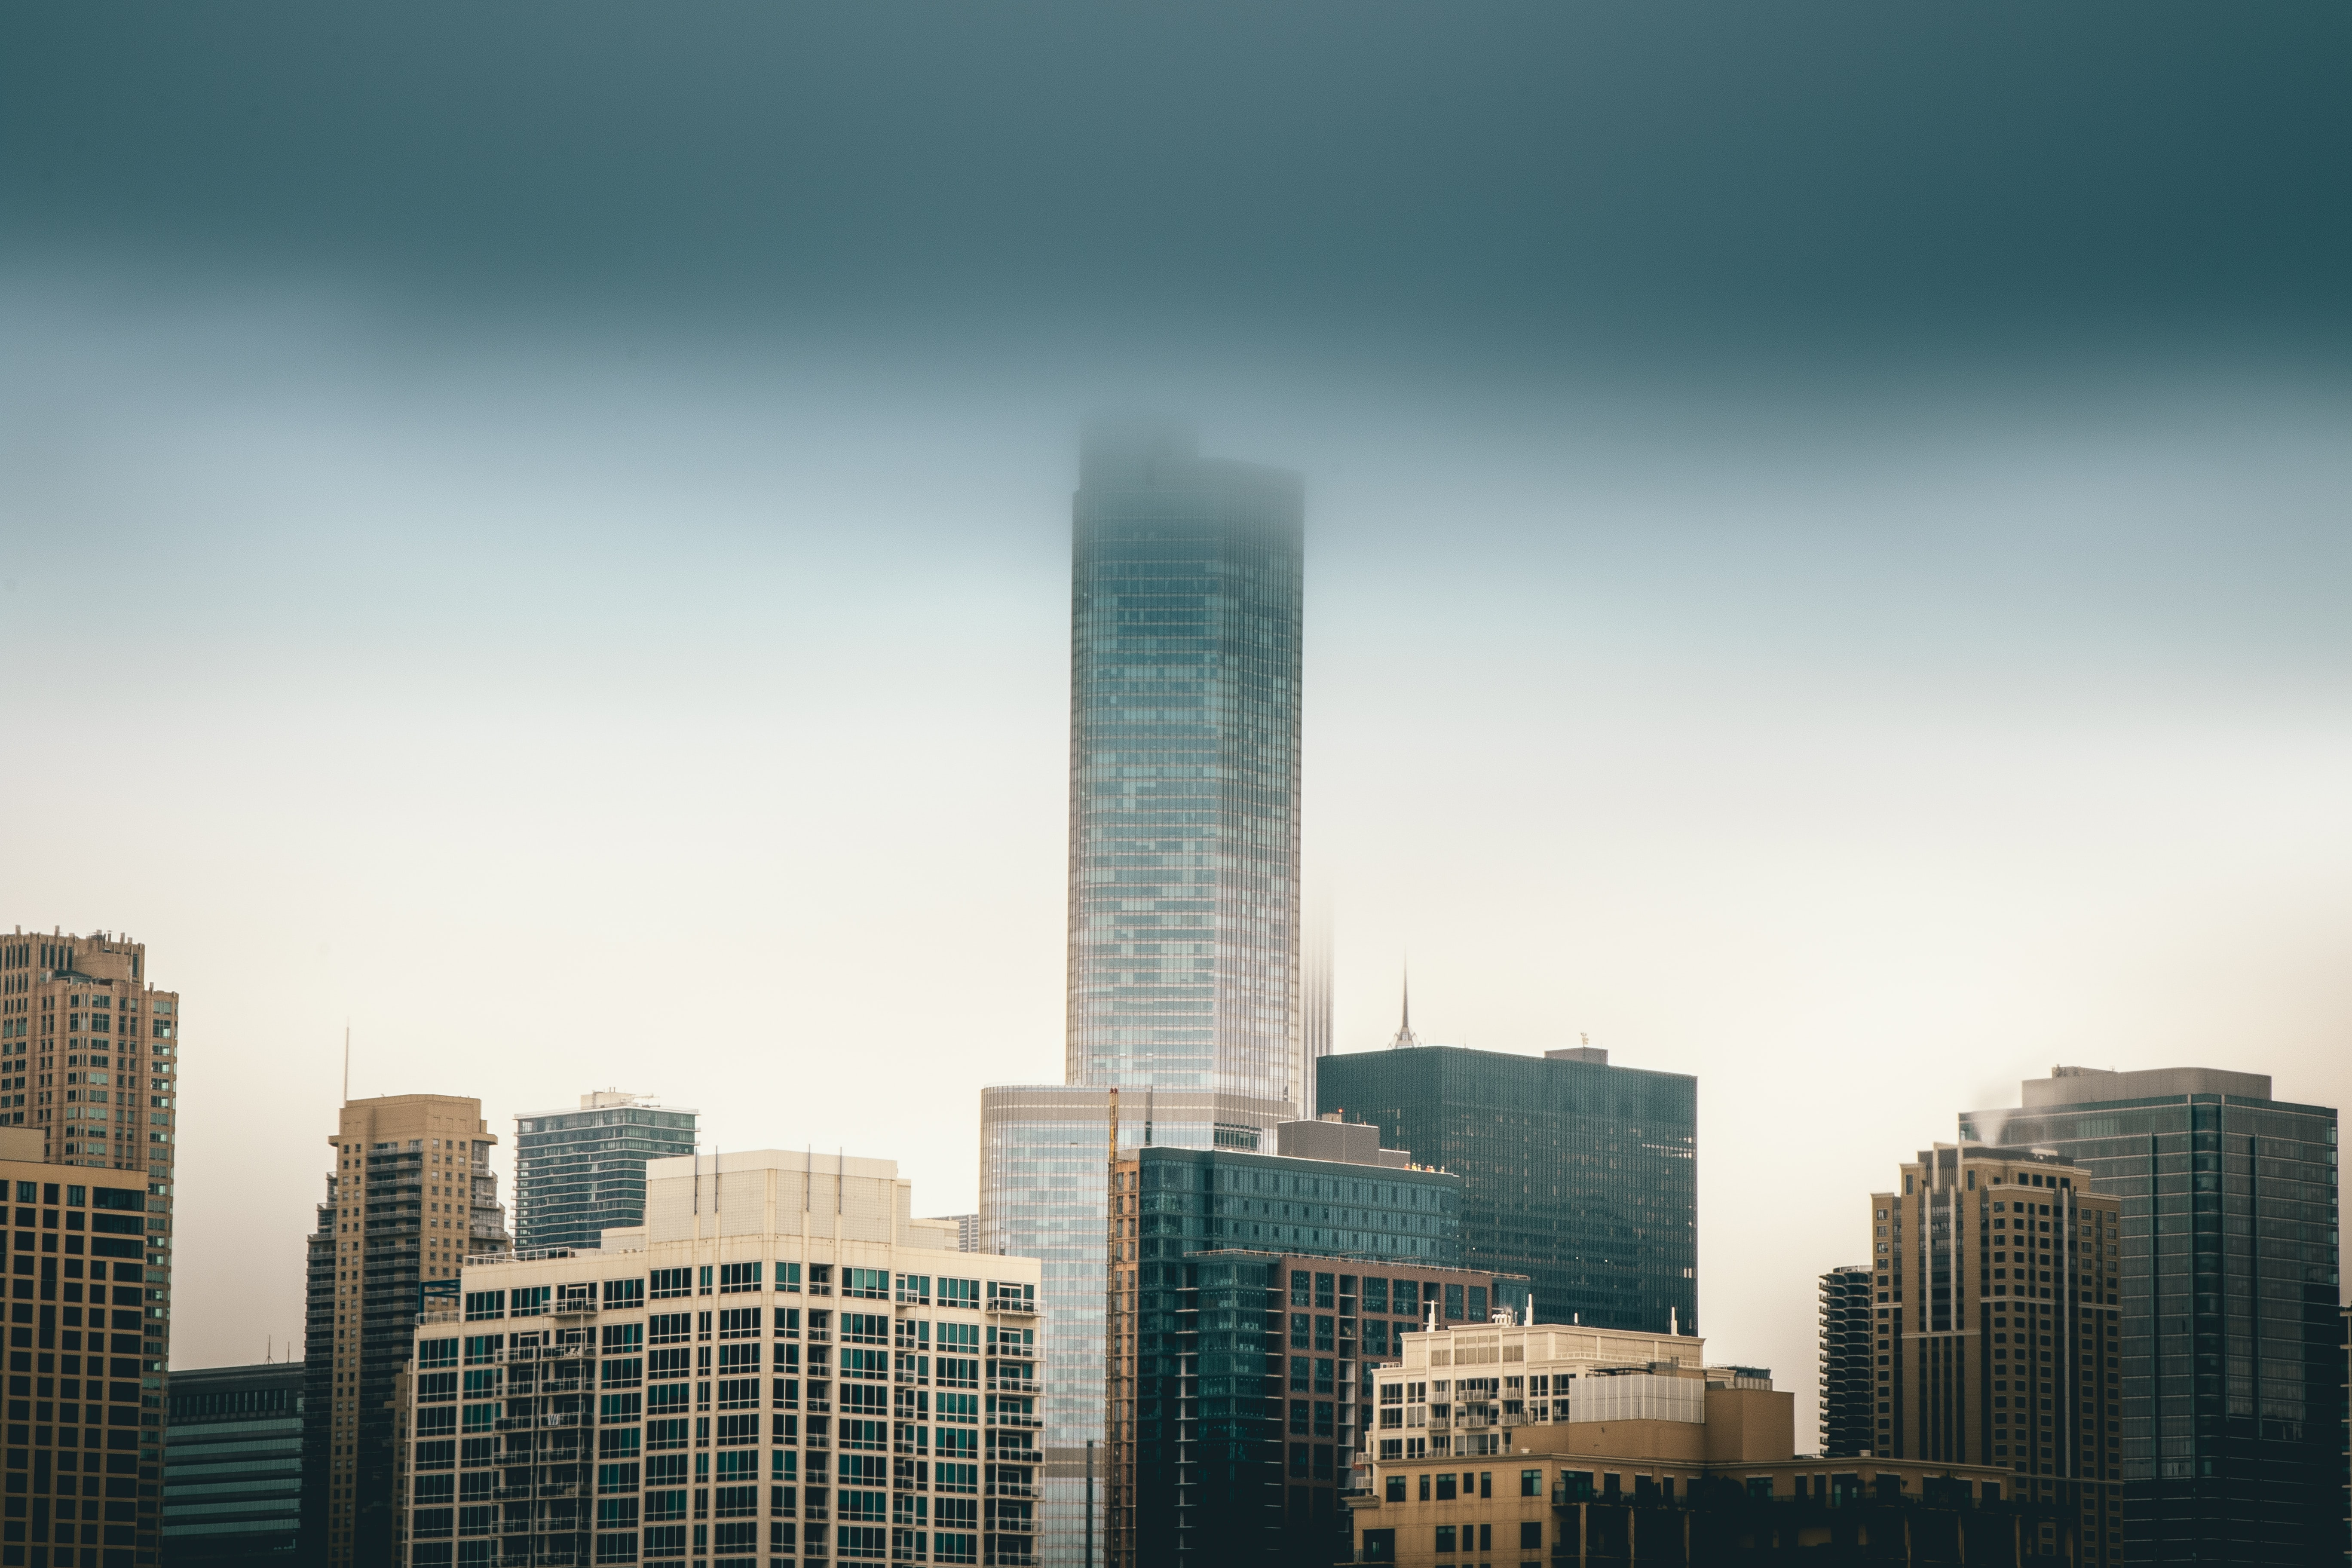 Skyscrapers and high-rises in a city on a foggy day